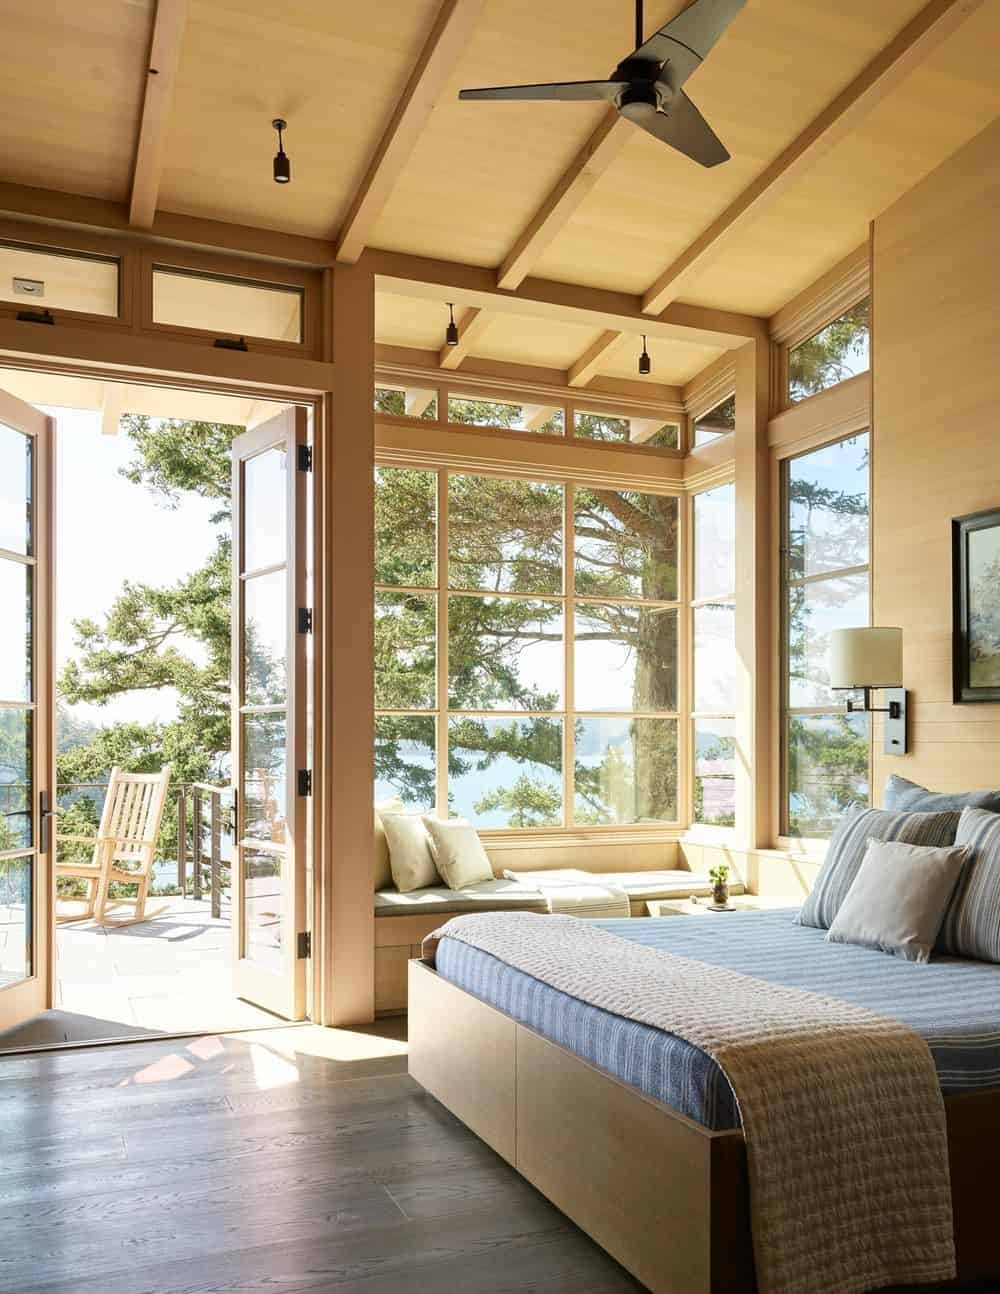 The wooden platform bed blends with the wooden walls and the wooden frames of the windows and glass doors on its side. There is a charming reading nook with a built-in cushioned bench by the window that showcases the wonderful scenery outside.